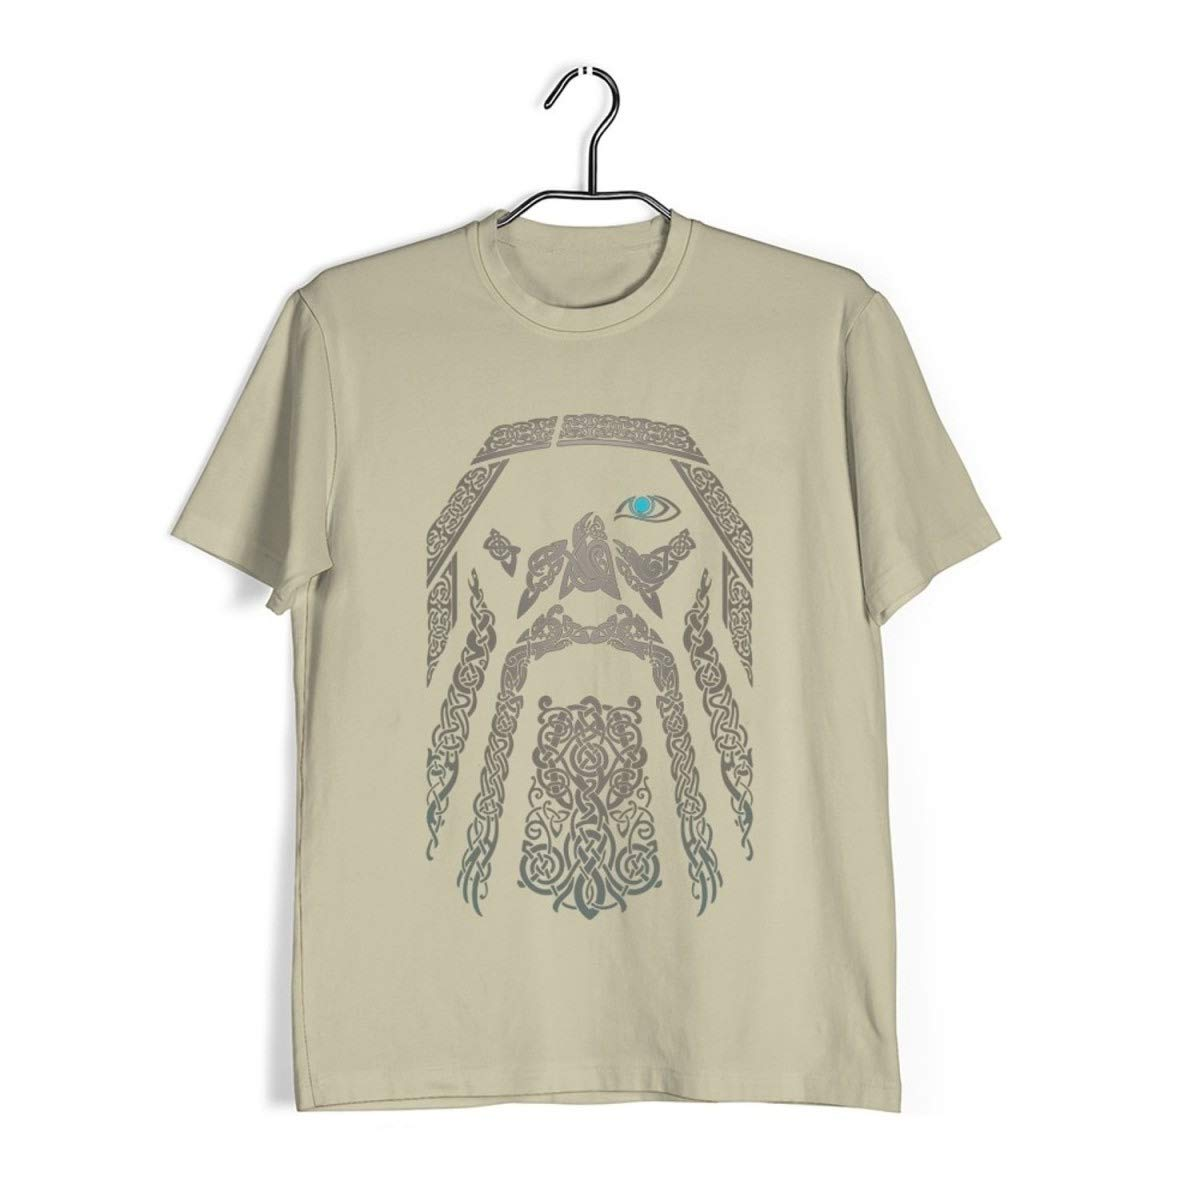 Homes1 T Shirts For Odin Tees Short Sleeve Father Gift O Neck Retro Adult T Shirt O Neck 1